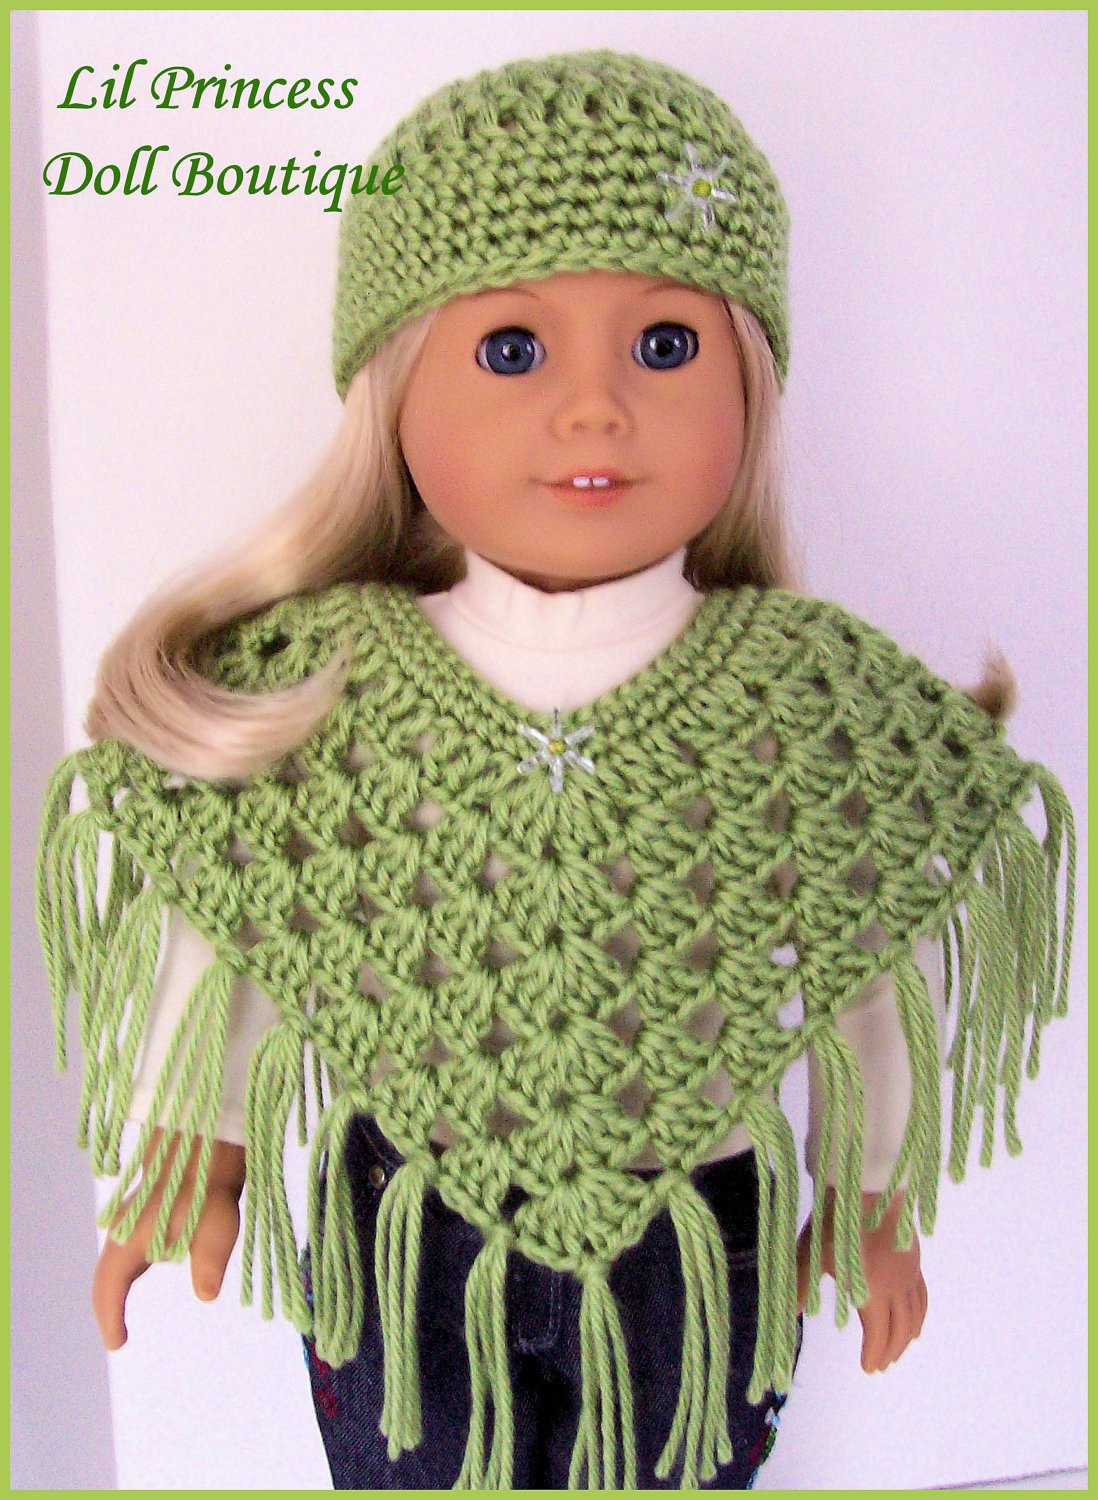 Free Crochet Patterns Baby Clothes Unique Free Doll Clothes Patterns Crochet Of Awesome 40 Images Free Crochet Patterns Baby Clothes